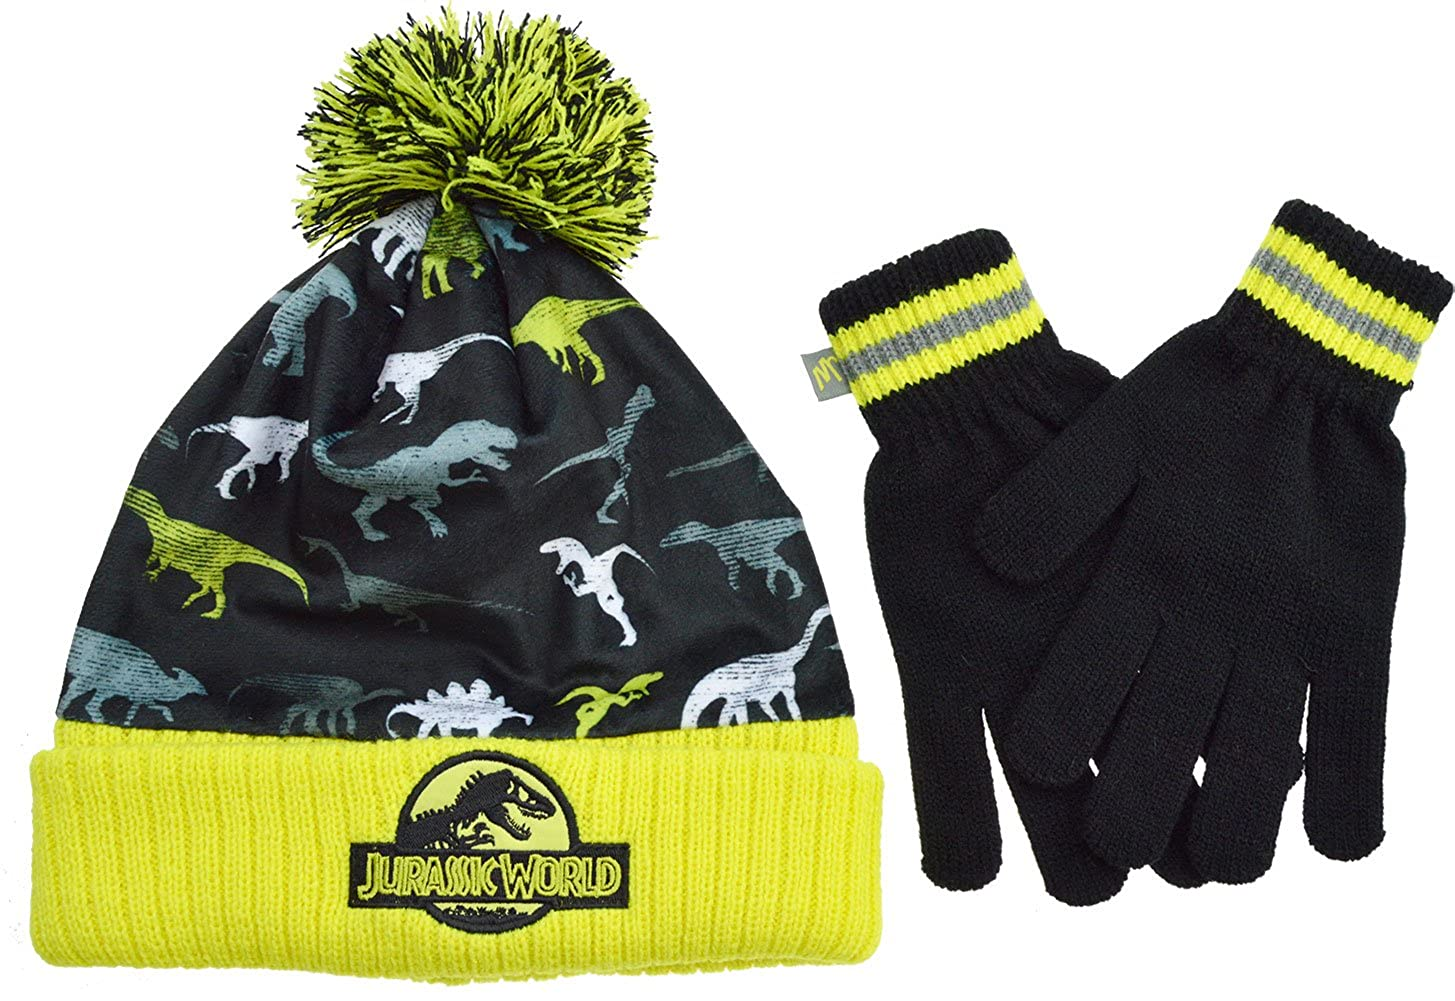 1ddb65410db72d Jurassic World Hat and Gloves Set Boys Winter Set Ages 6-14 Years[12+  Years][Black]: Amazon.co.uk: Clothing